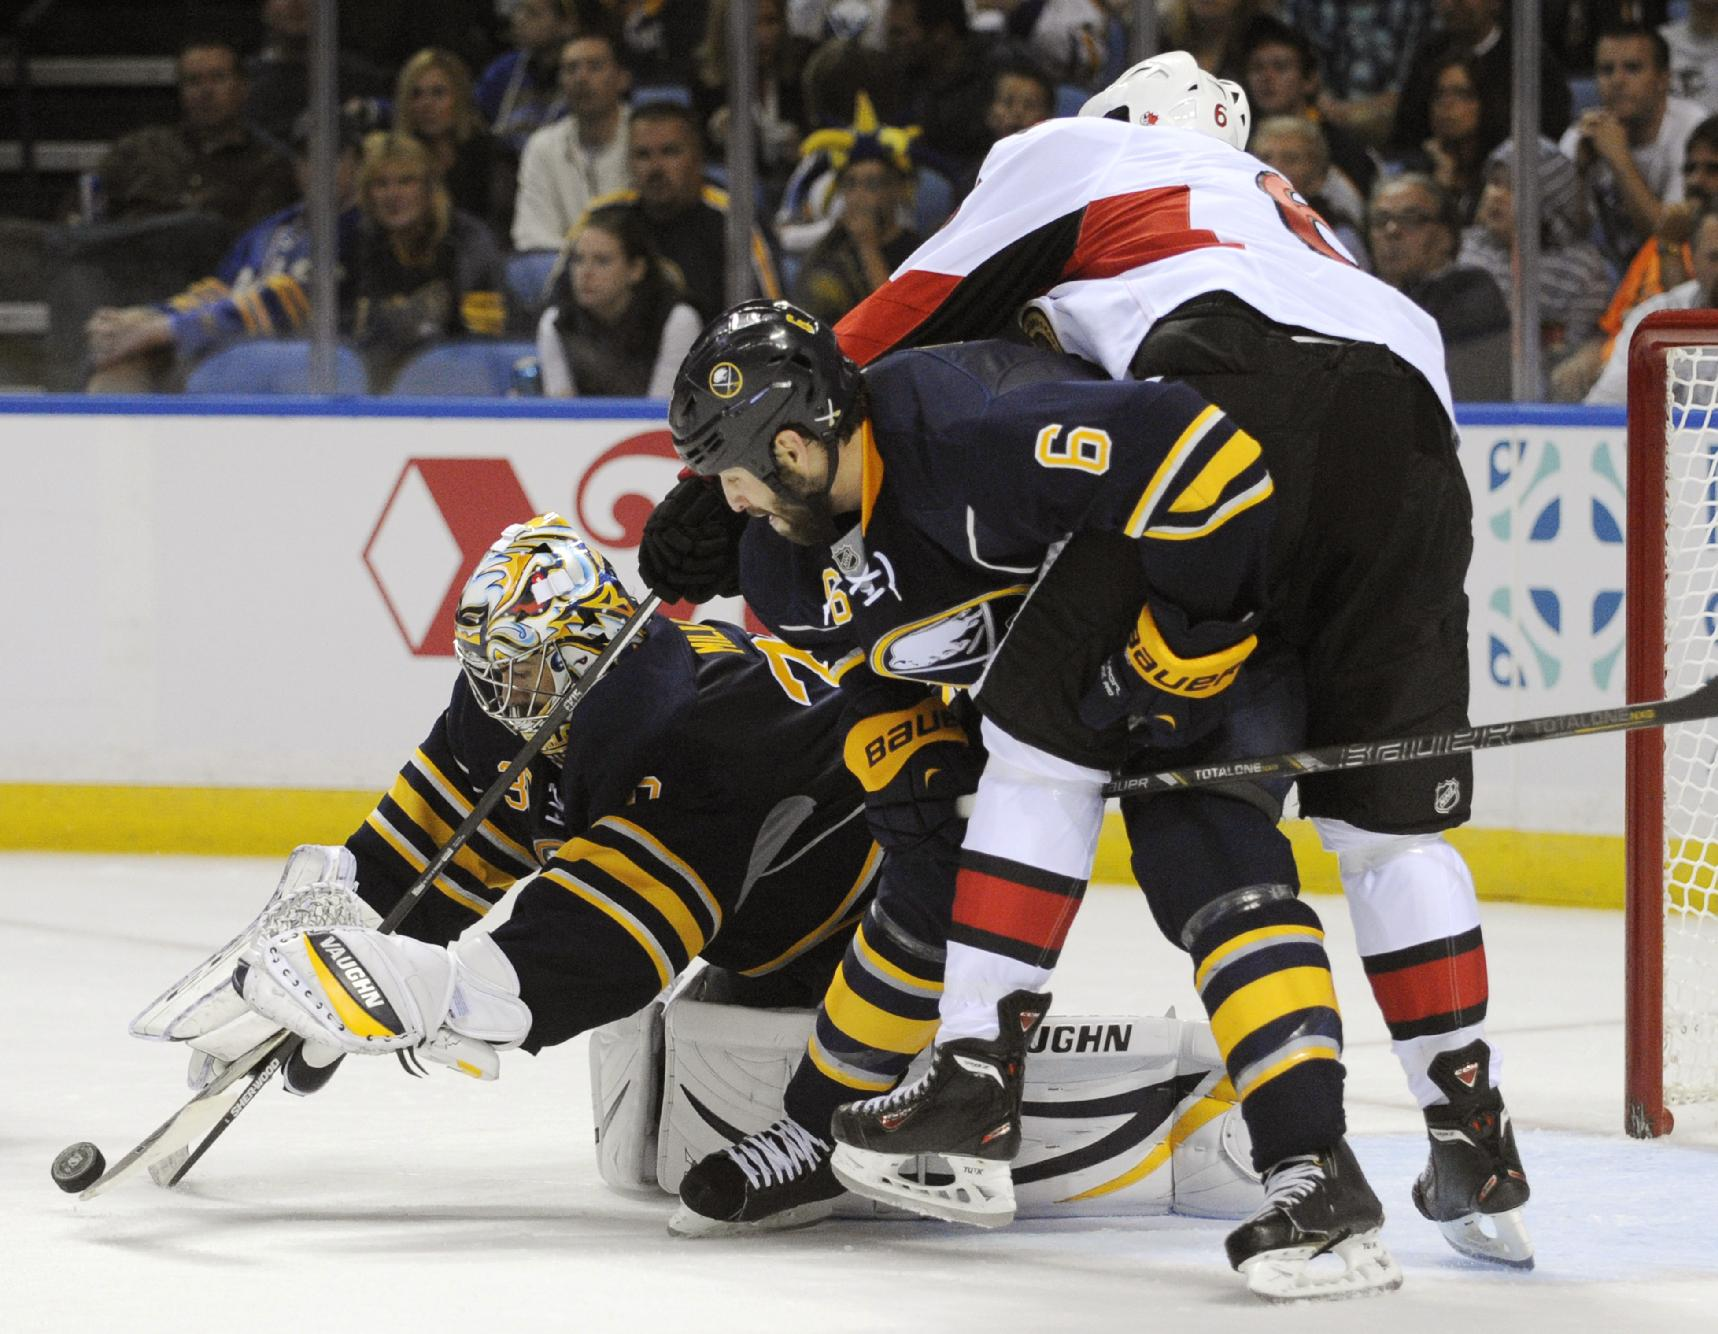 Buffalo Sabres goalie Ryan Miller (30) reaches for the puck as Sabres' Mike Weber (6) checks Ottawa Senators' Bobby Ryan (6) during the second period of an NHL hockey game in Buffalo, N.Y., Friday, Oct. 4, 2013